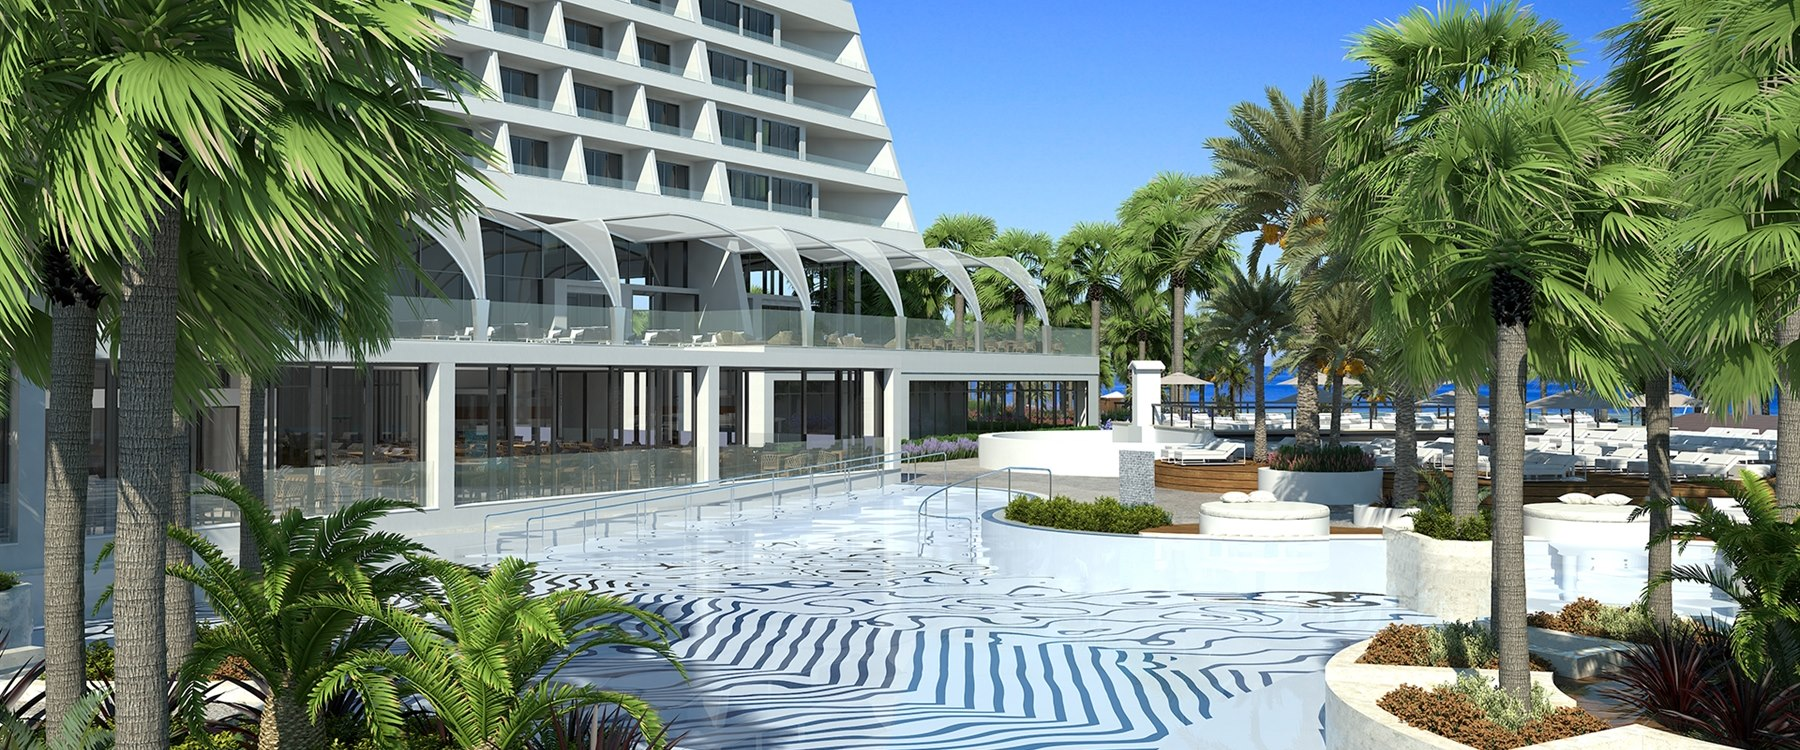 Parklane a luxury collection resort cyprus luxury holiday - Intercontinental park lane swimming pool ...